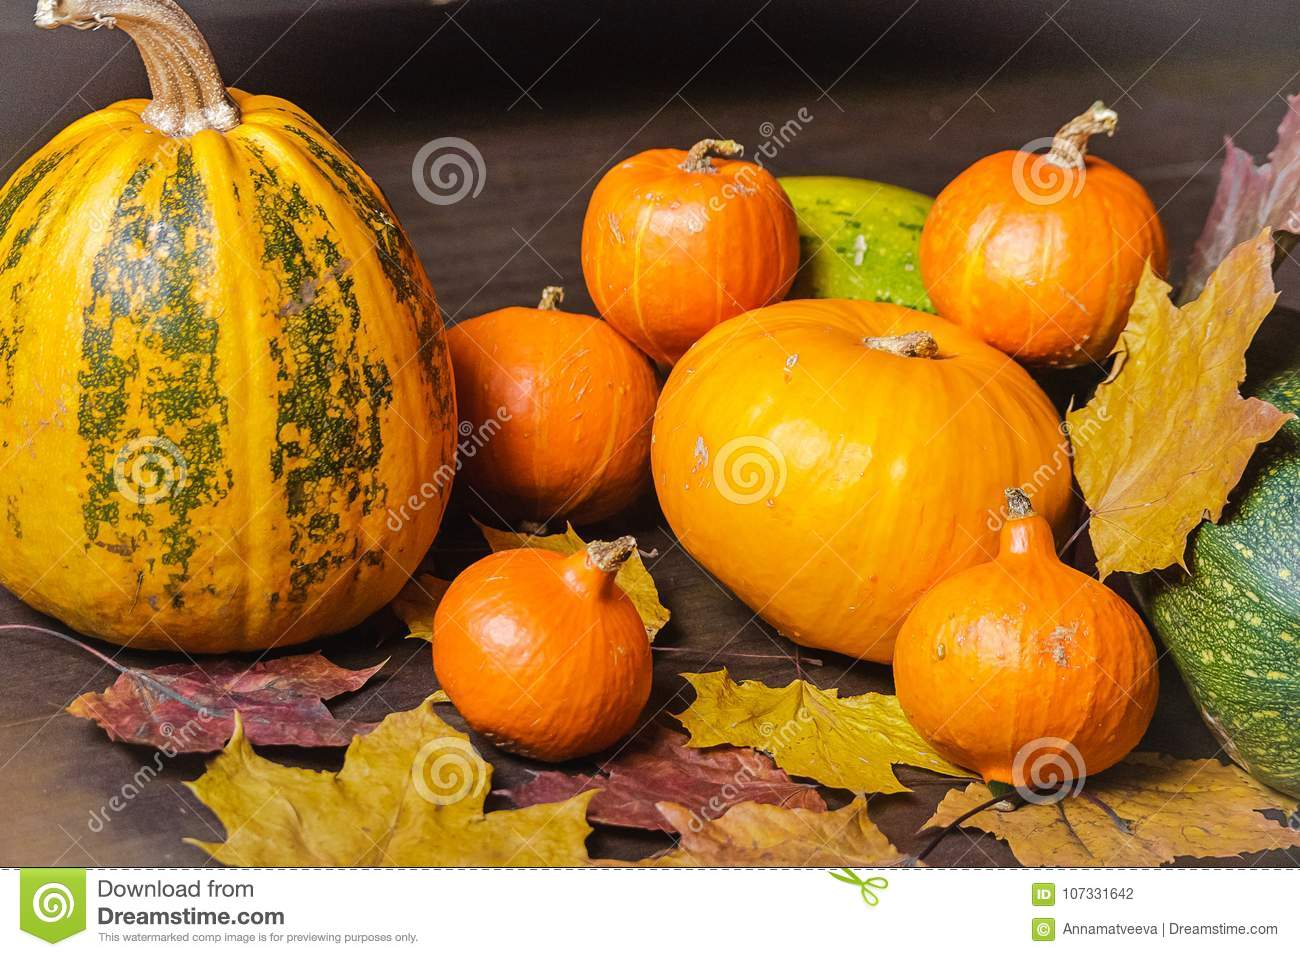 Feuilles toujours d Autumn Orange Pumpkin With Dry de la vie